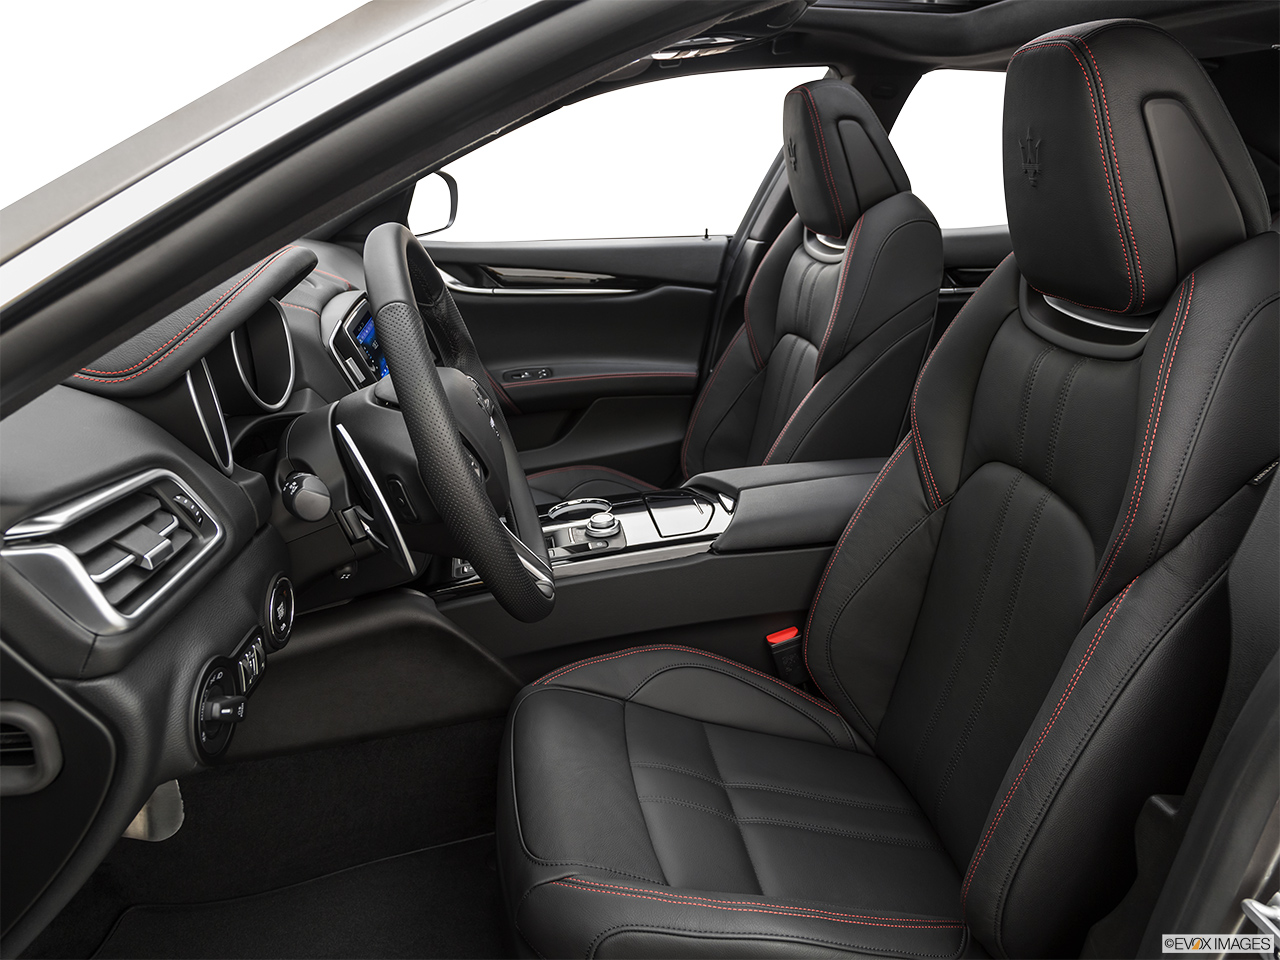 2019 Maserati Ghibli S Gransport Front seats from Drivers Side.